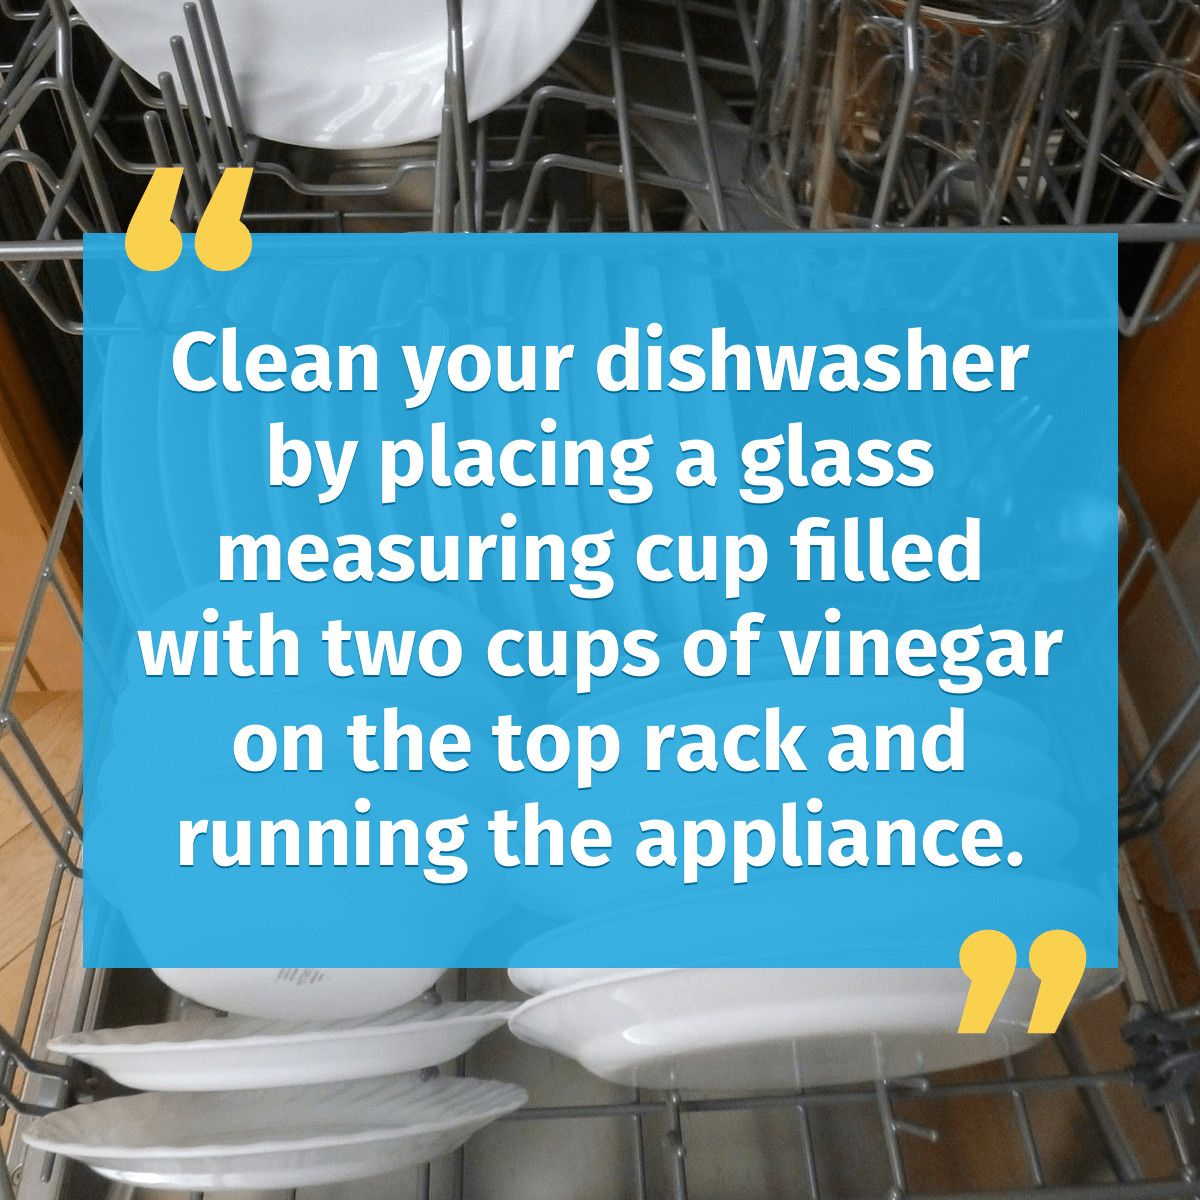 Quickly Rid Your Dishwasher Of Harmful Bacteria With This